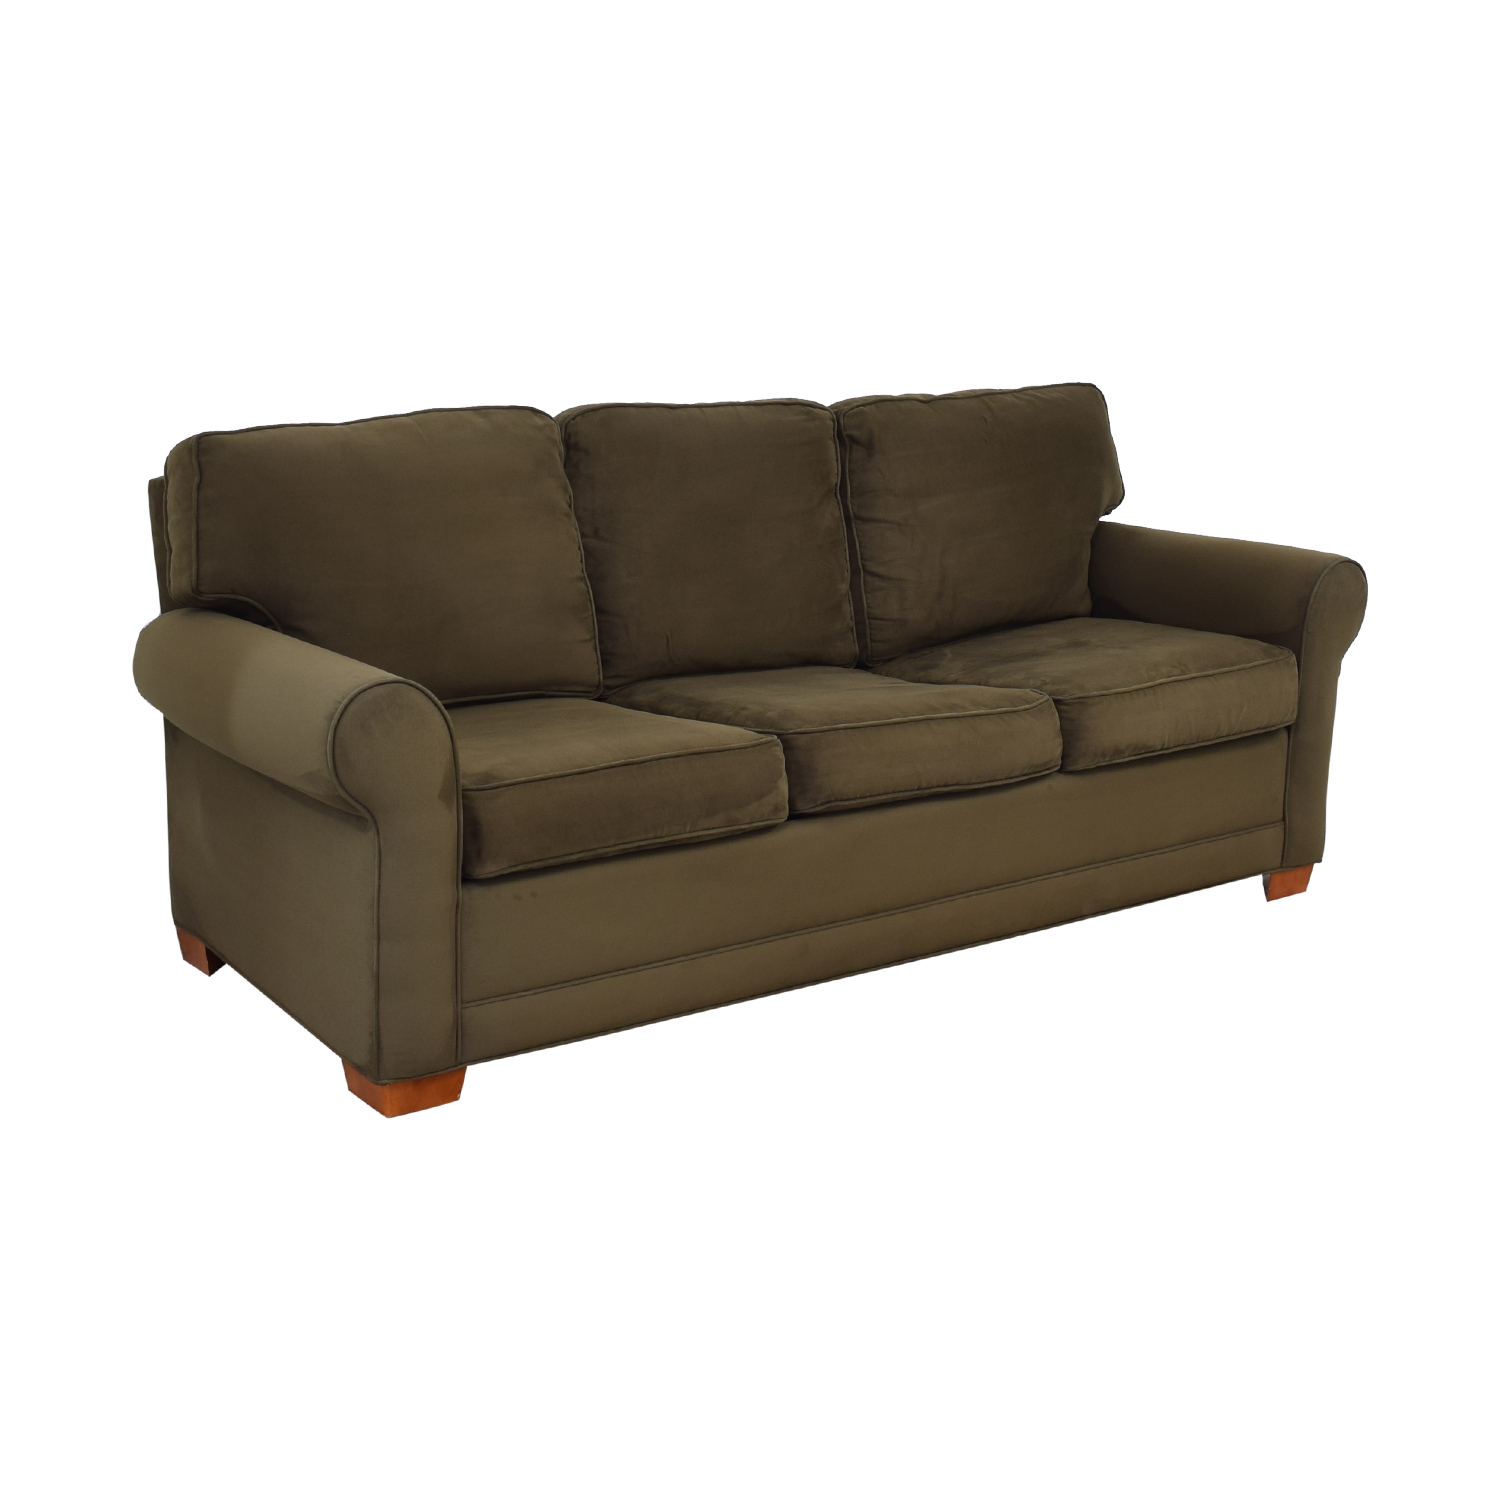 buy Raymour & Flanigan Rolled Arm Three Seat Sofa Bed Raymour & Flanigan Sofas